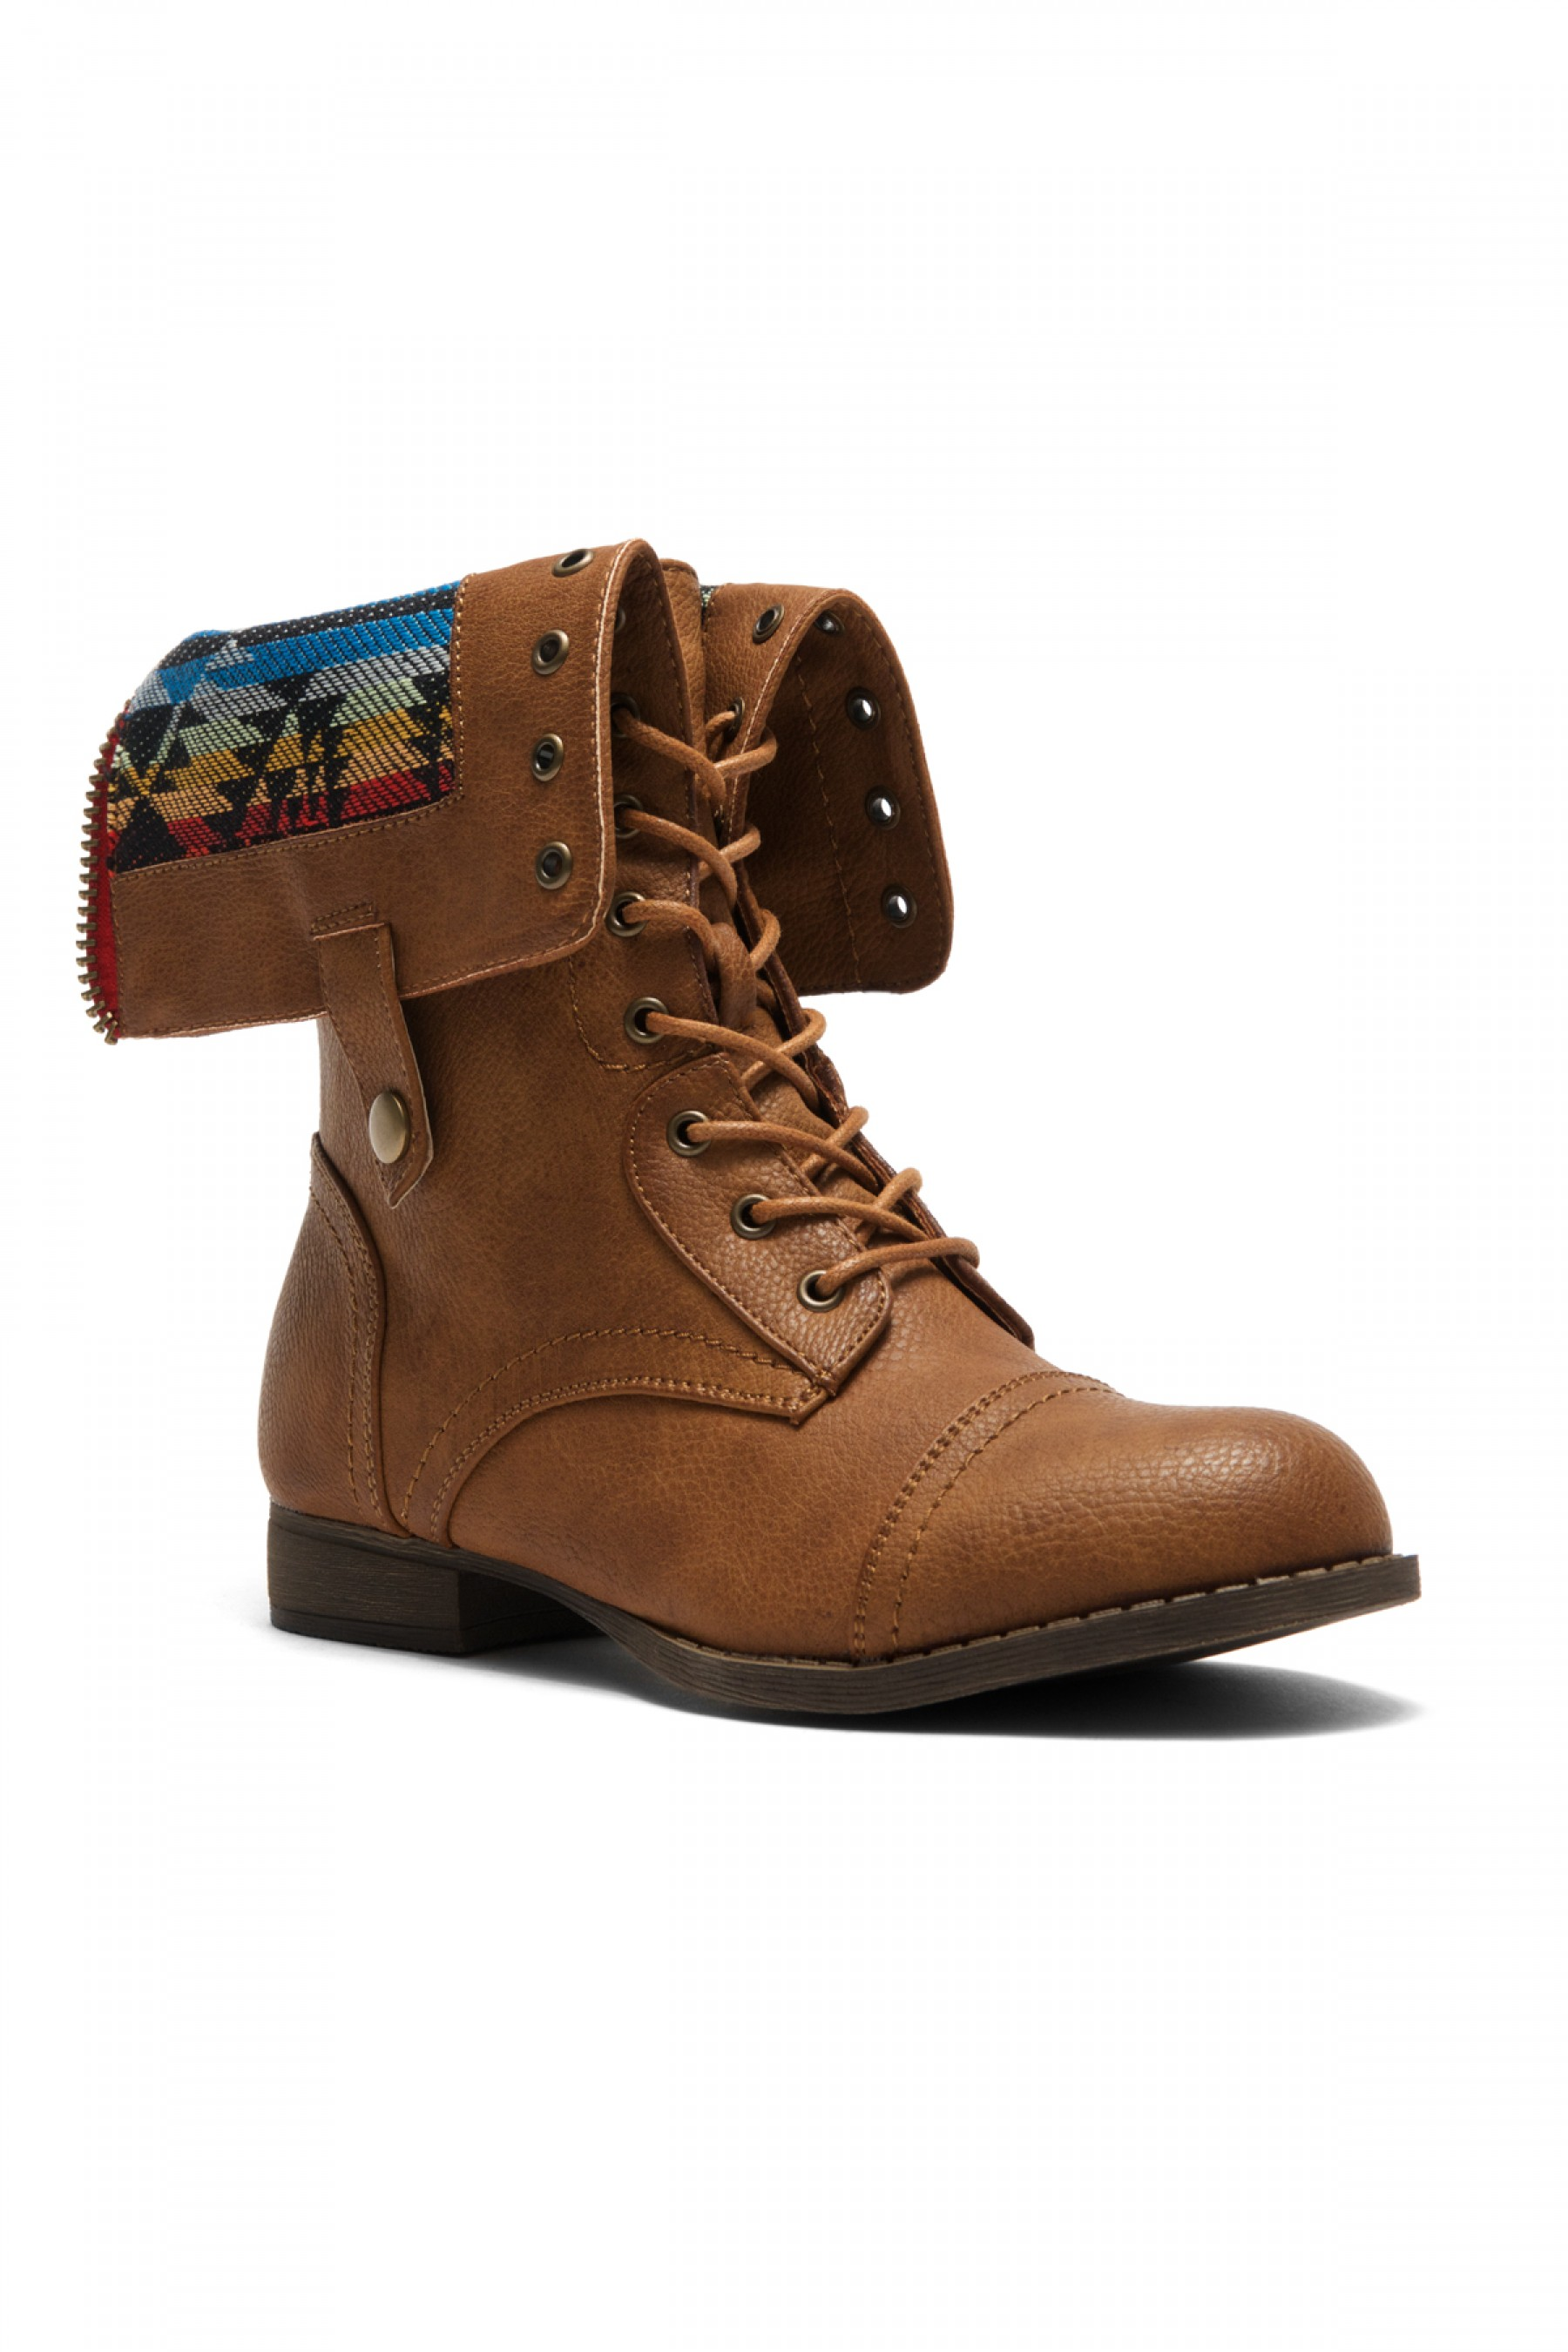 HerStyle Women's Manmade Emoojjii Combat Boot with Patterned Fold-Down Liner (Tan)